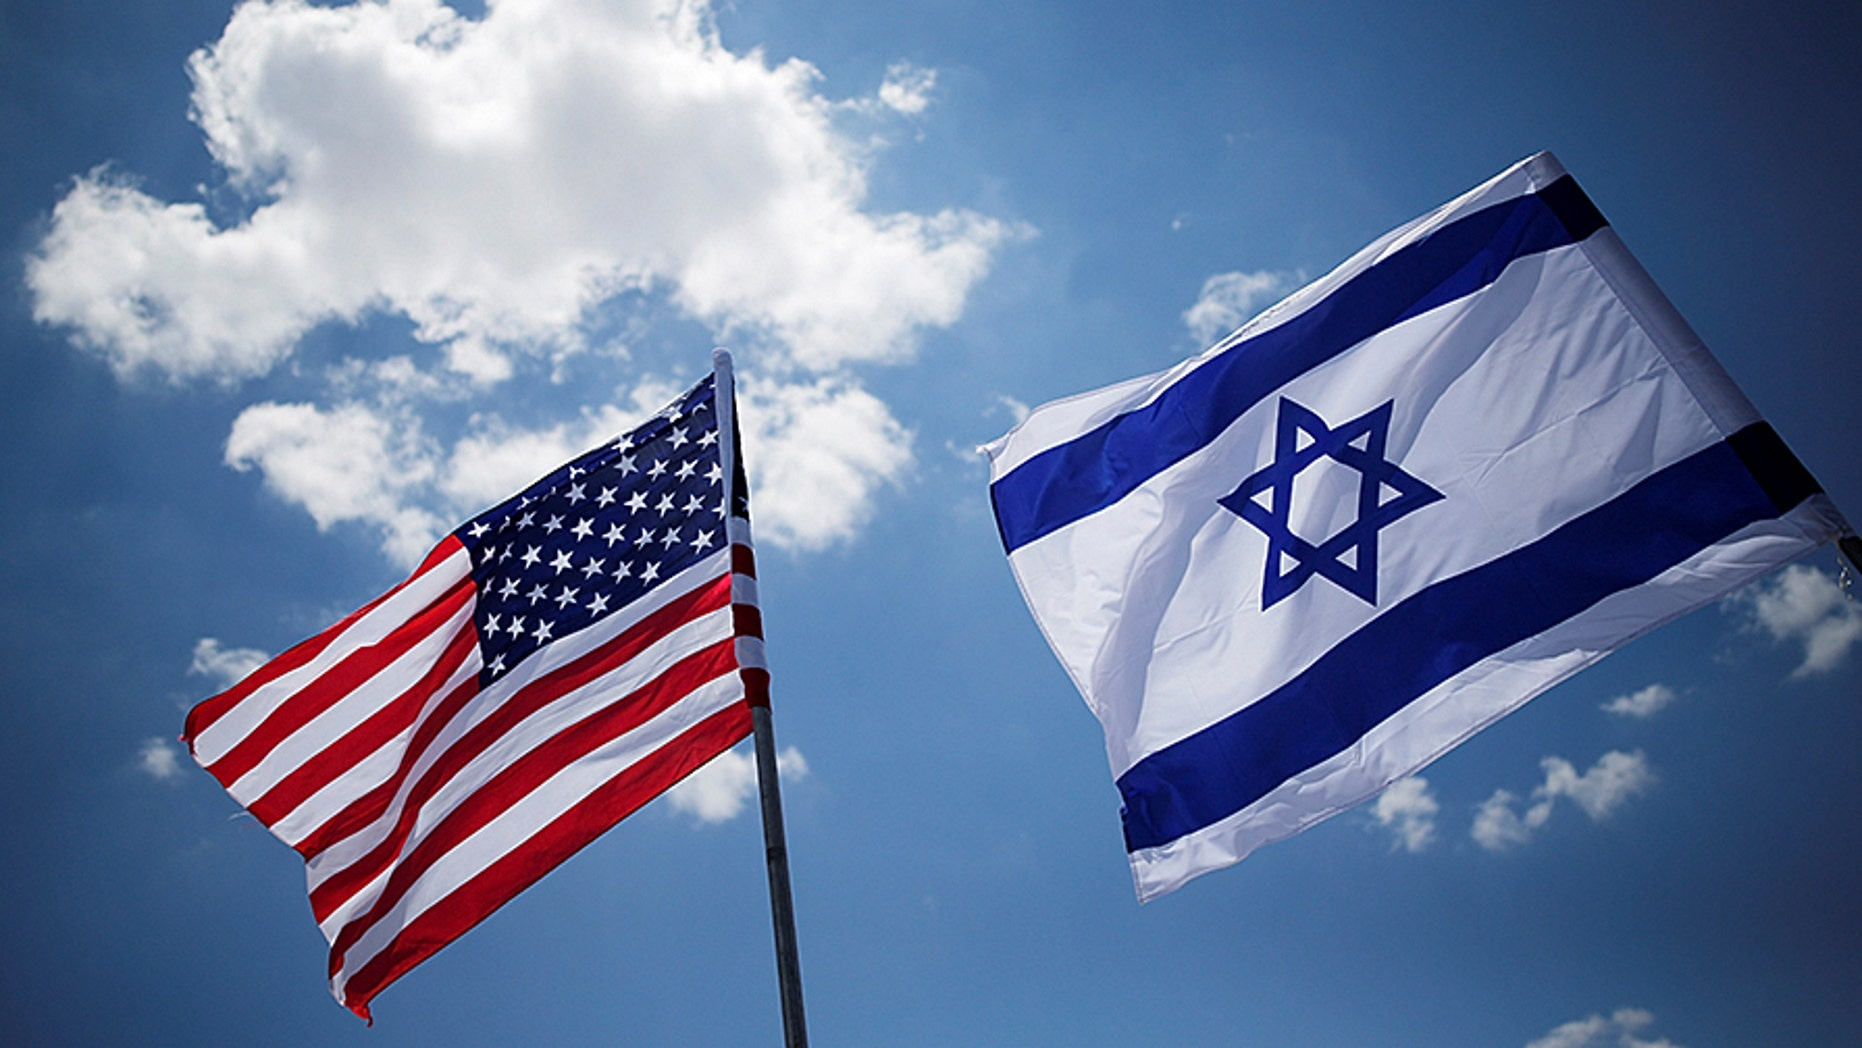 American and Israeli flags at Ben Gurion International Airport in Lod, Israel.